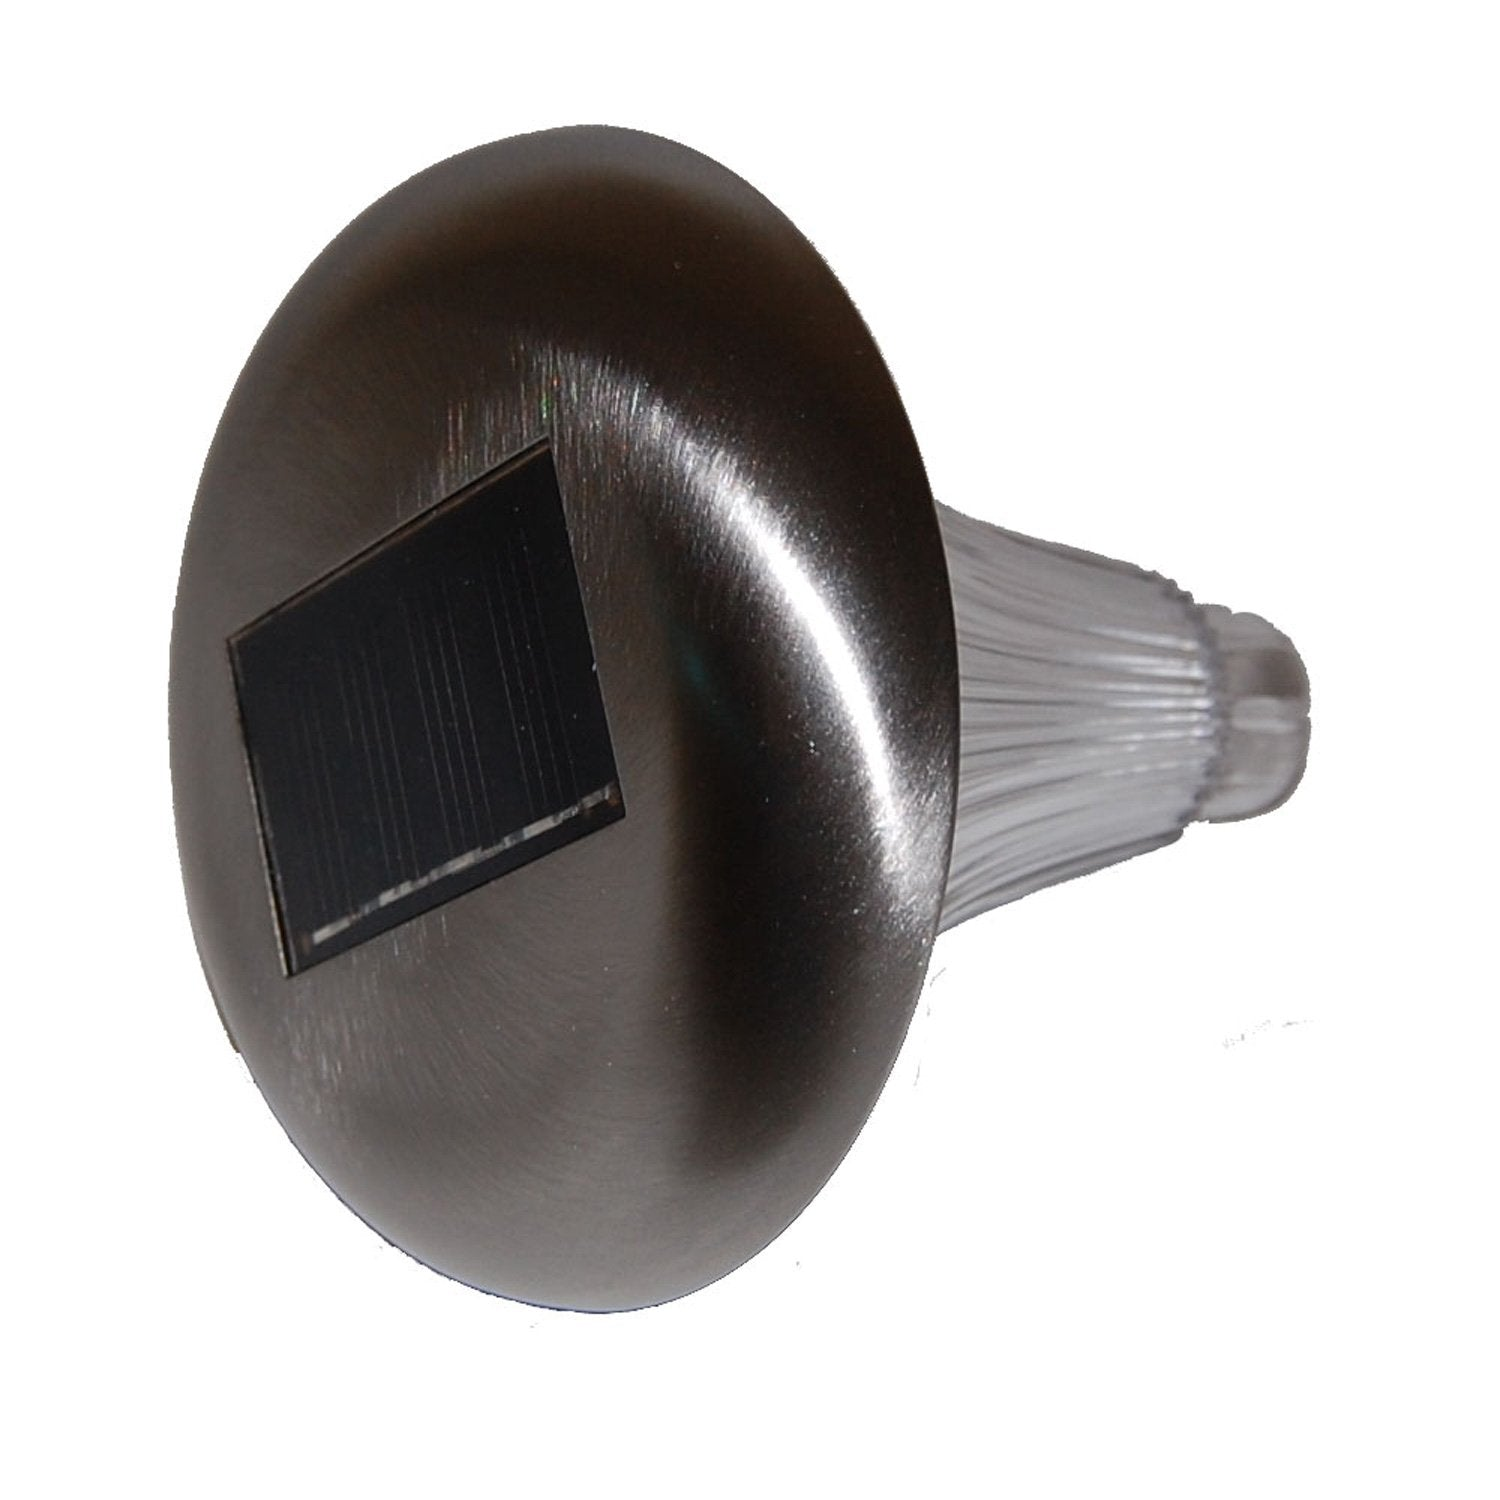 Replacement Part - Solar Light Unit for Solar Chimes main image